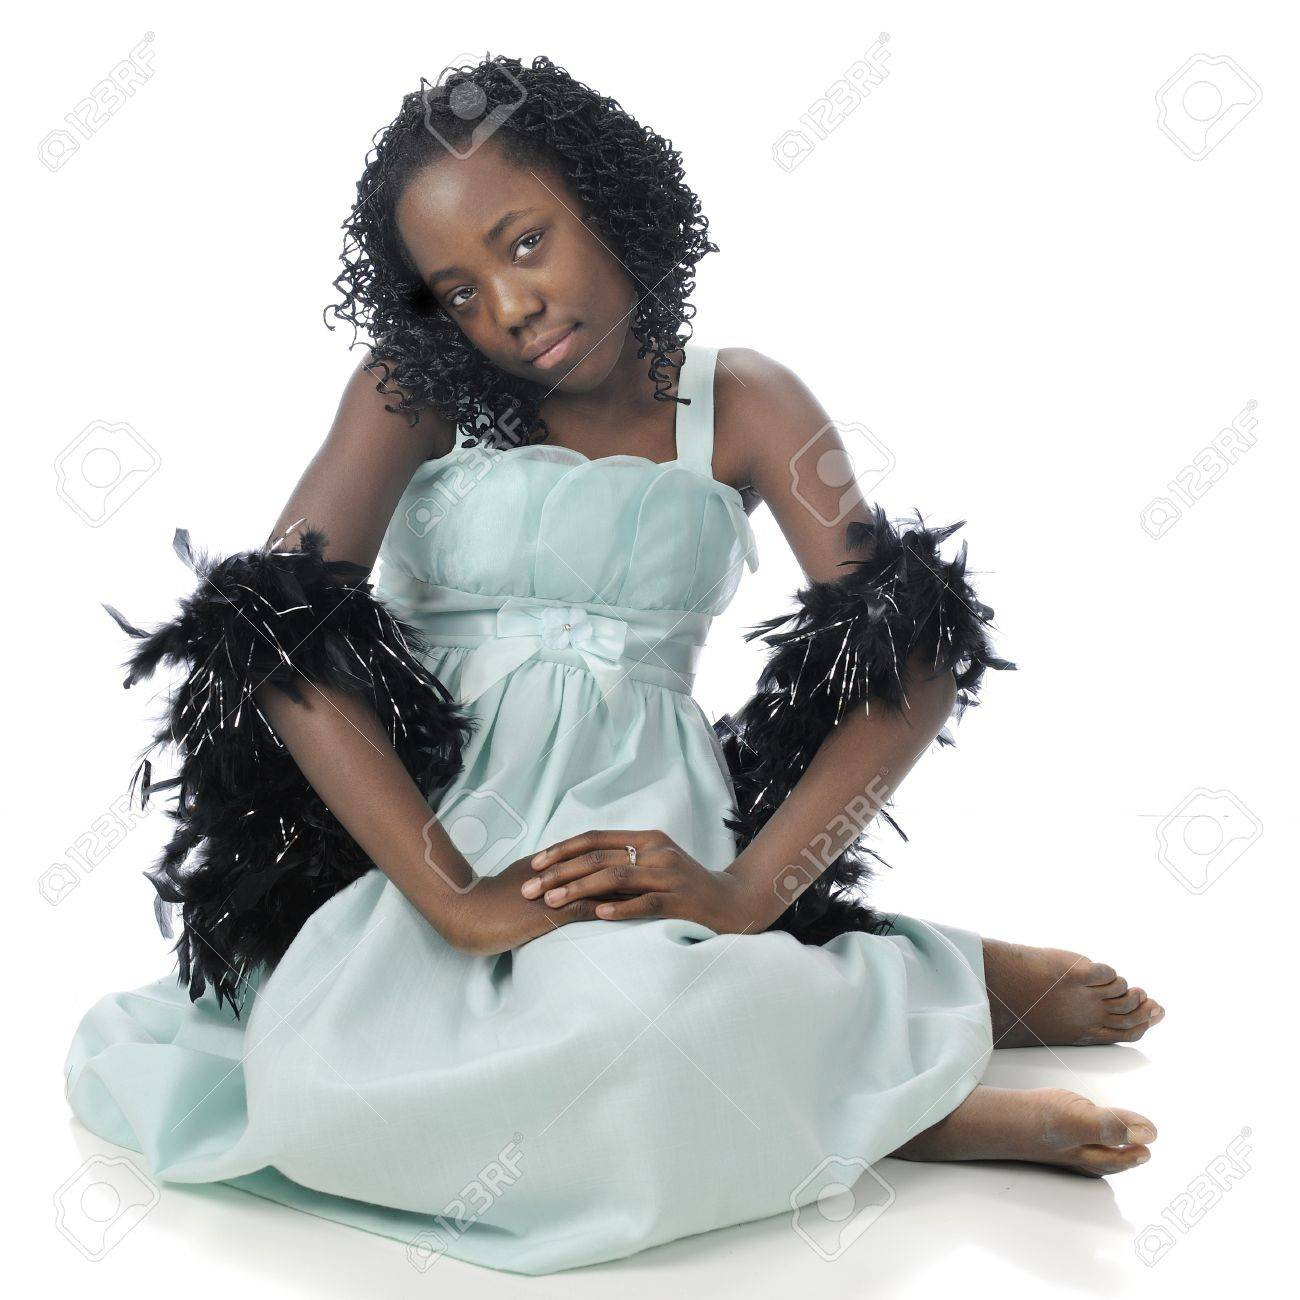 black preteen american preteen: A beautiful tween girl sitting in her soft green dres  with black boas